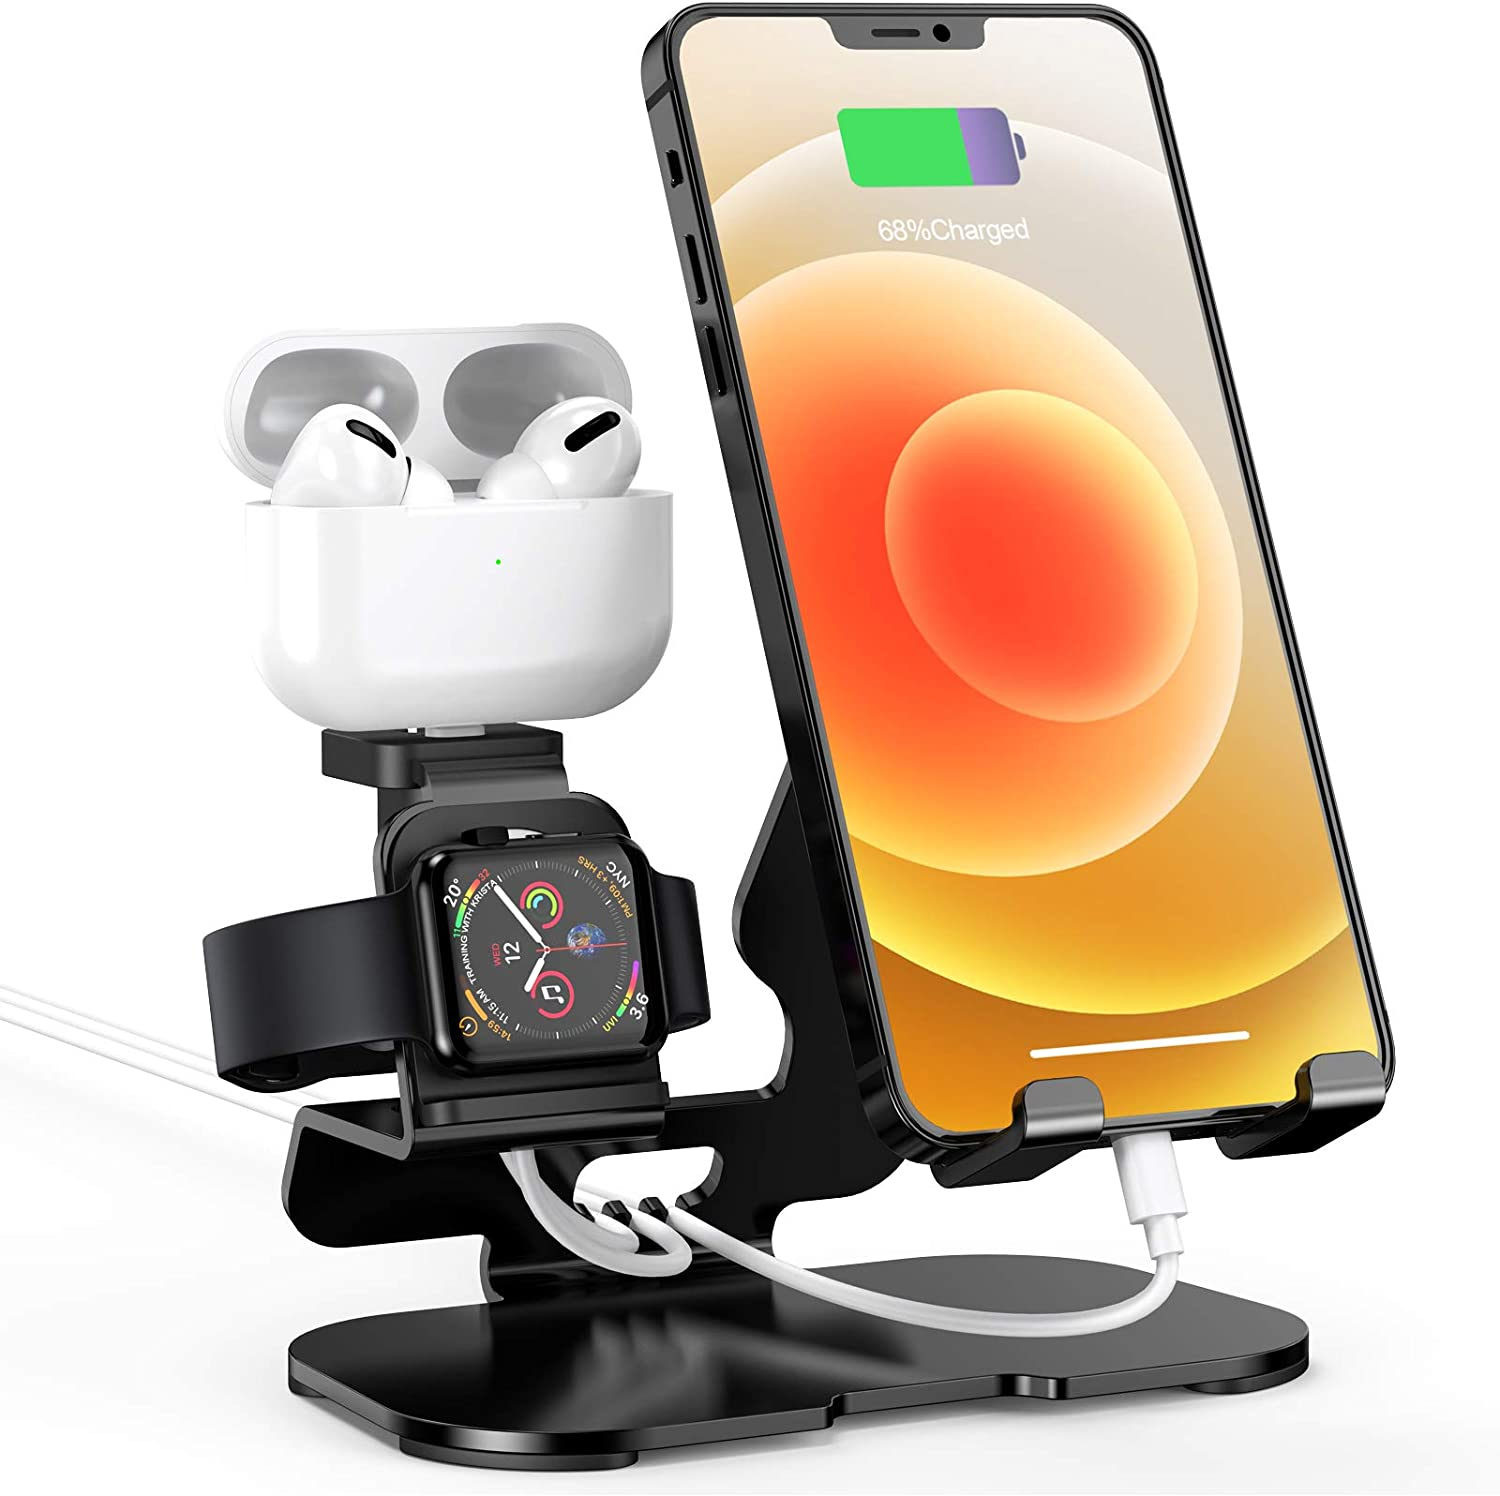 3 in 1 Charging Stand for Apple Watch, iPhone & Airpods Pro, HoRiMe Charging Dock Compatible with iPad, iPhone, Apple Watch Series SE/ 6/5/4/3/2/1, Airpods Pro/2/1(Charger & Cables Required) Black